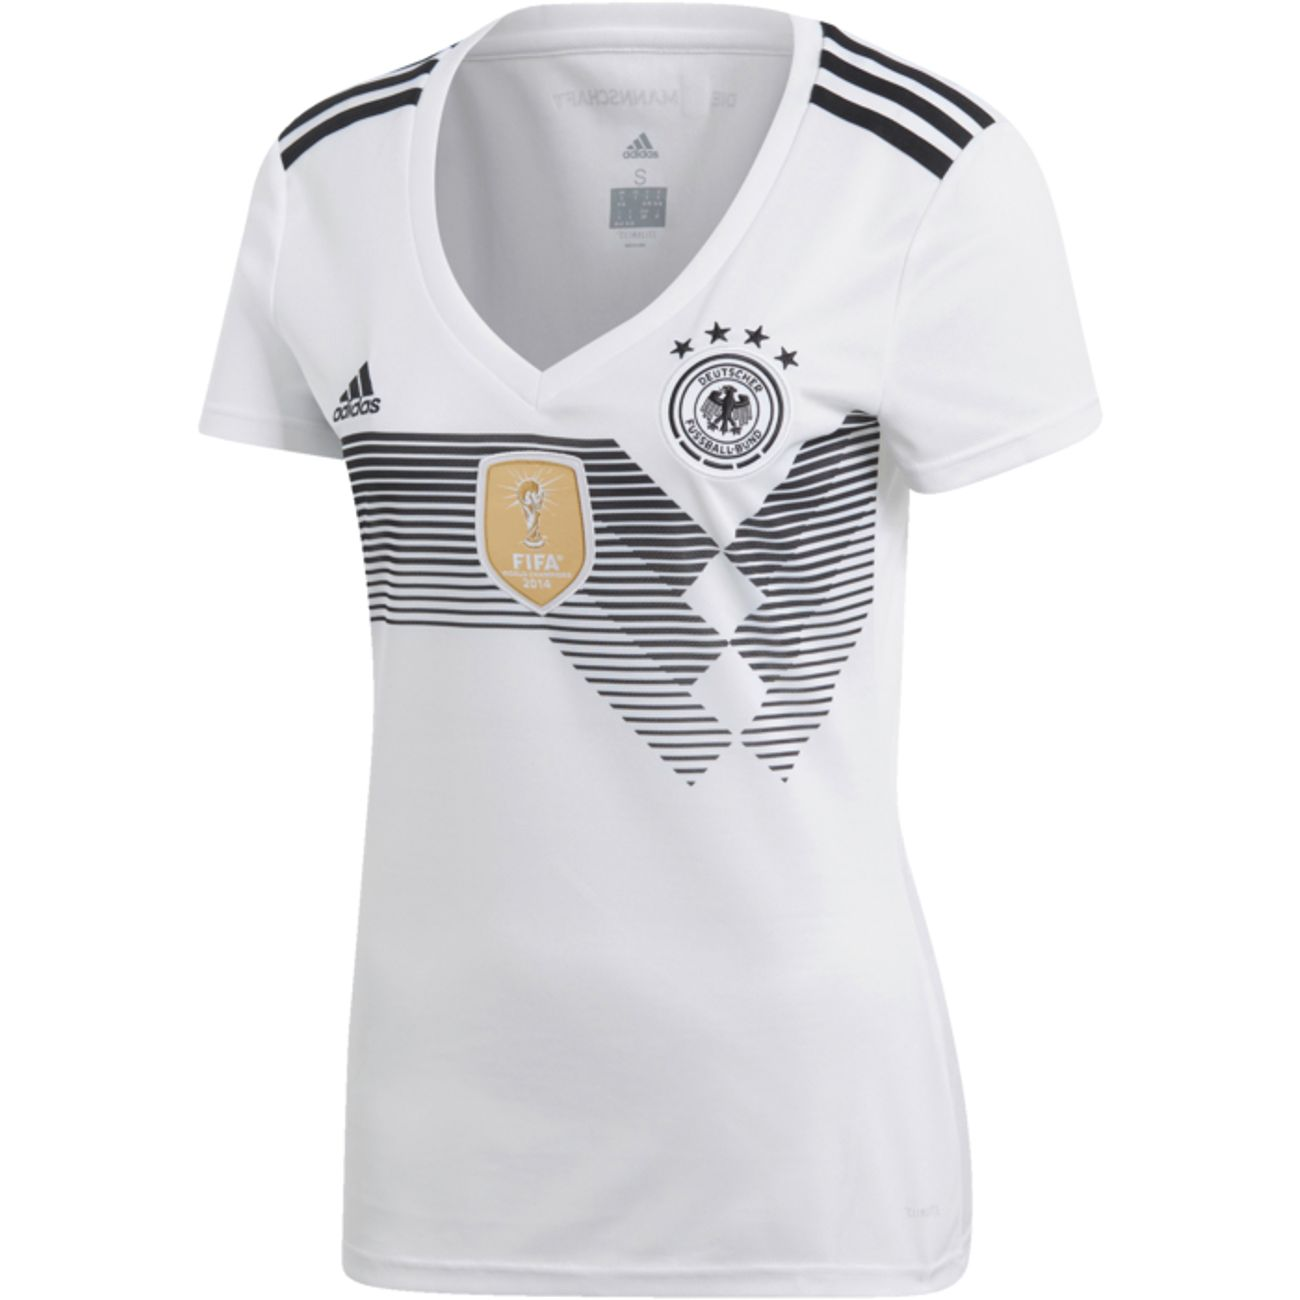 REPLIQUE MAILLOT FOOT   ADIDAS DFB H JSY W